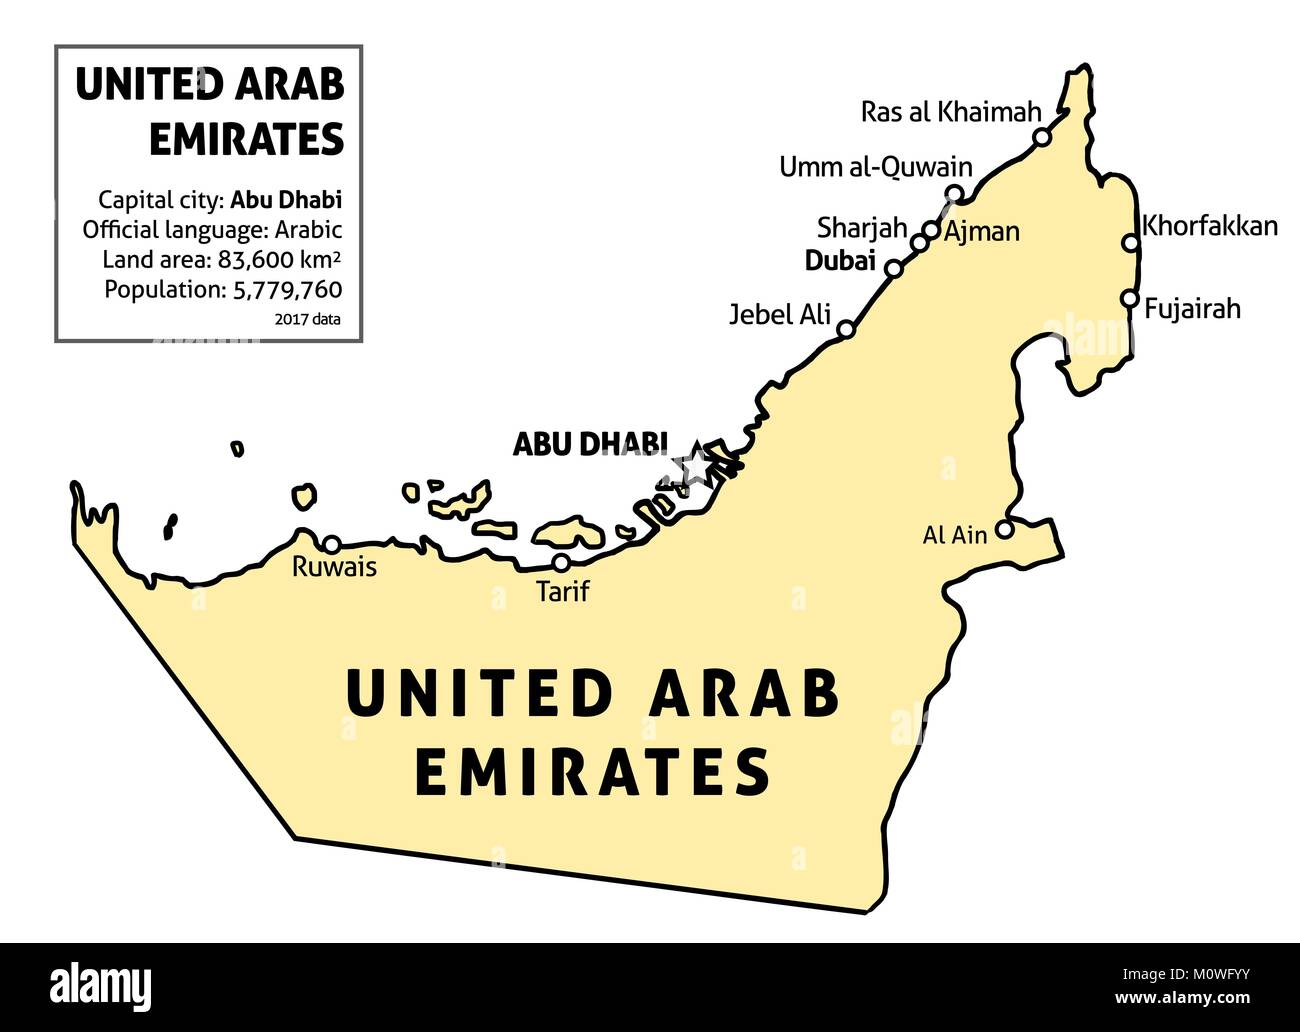 United Arab Emirates (UAE) map. Outline vector country map ... on map of algeria, middle east, ras al-khaimah, burj al-arab, united states of america, map of bhutan, map of sudan, map of malaysia, arabian peninsula, persian gulf, map of iran, map of isle of man, map of ethiopia, map of dubai and surrounding countries, map of netherlands, abu dhabi, burj khalifa, map of montenegro, saudi arabia, map of singapore, map of pakistan, map of hungary, map of oman, map of venezuela, map of bosnia, map of bahrain, map of israel, map of armenia, map of denmark,